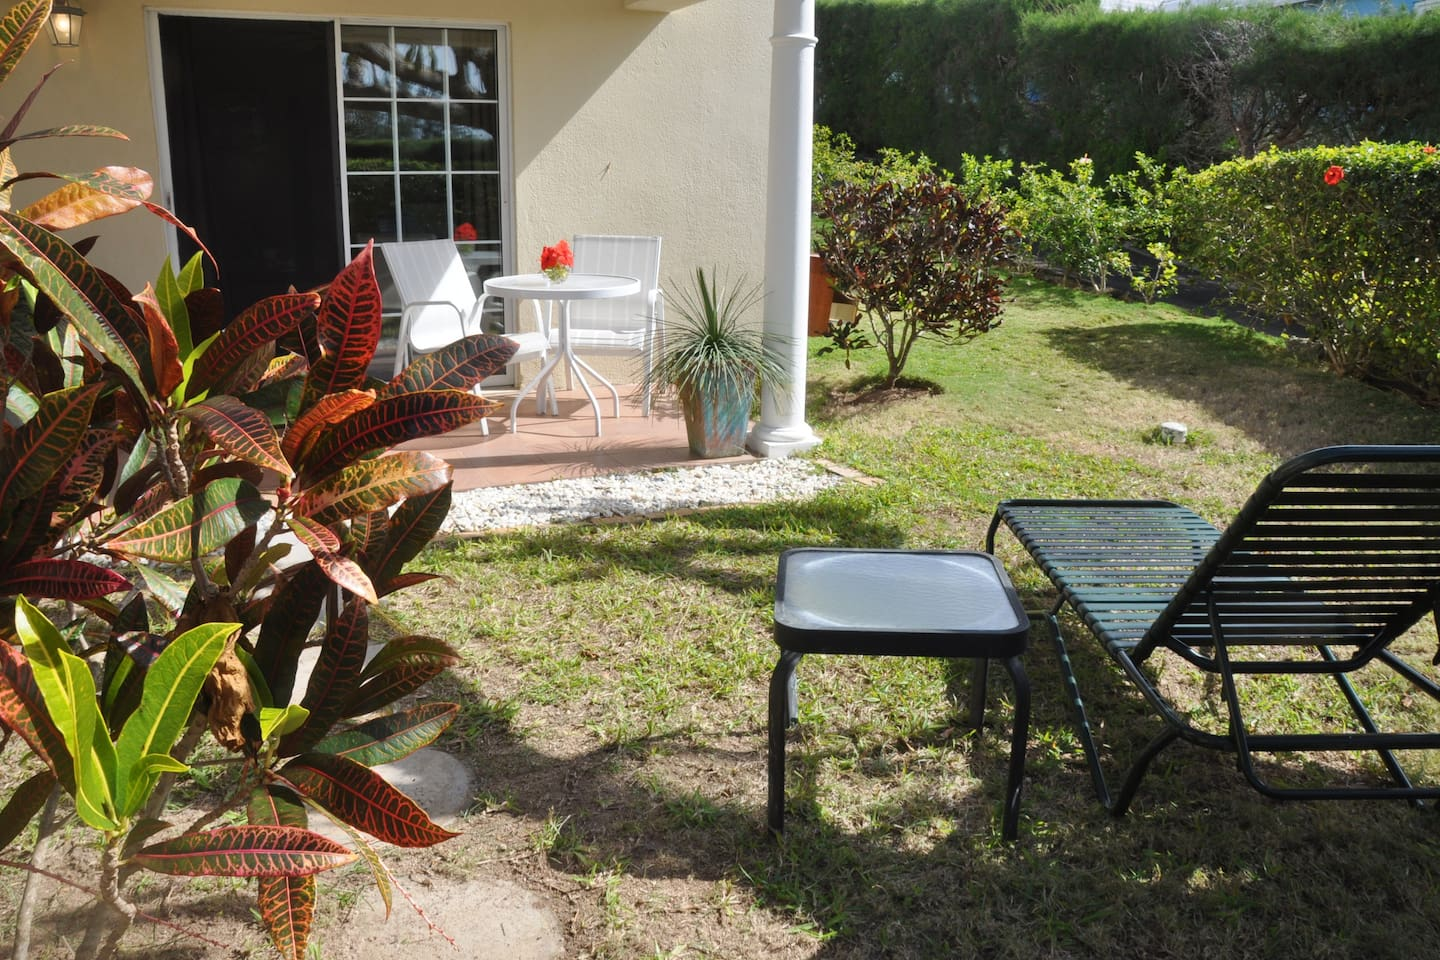 Cozy 1 Bedroom with private entrance, garden and parking area close to water. Near Fort Scaur.  Close to Railway Trail for walking, running and cycling.  3 minute walk to bus stop.  Nearby Supermarket and restaurants.  15 minutes from Horseshoe Bay.